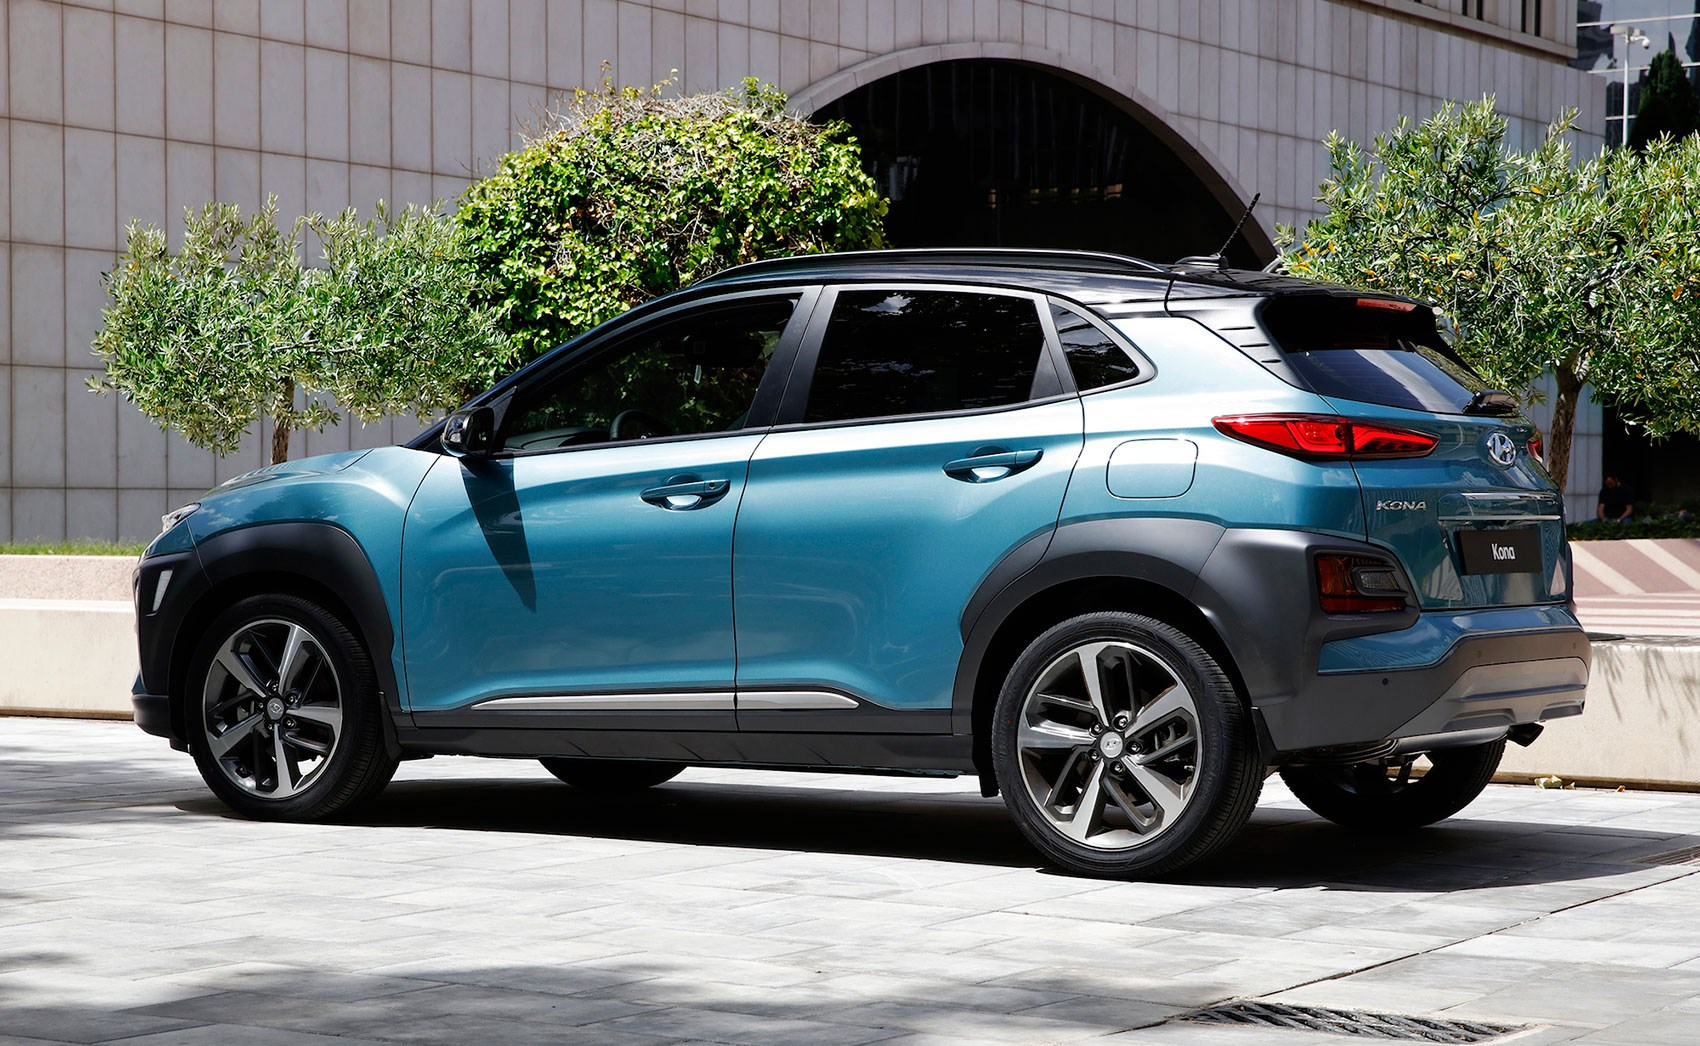 new hyundai kona suv specs pics and details on electric model car magazine. Black Bedroom Furniture Sets. Home Design Ideas